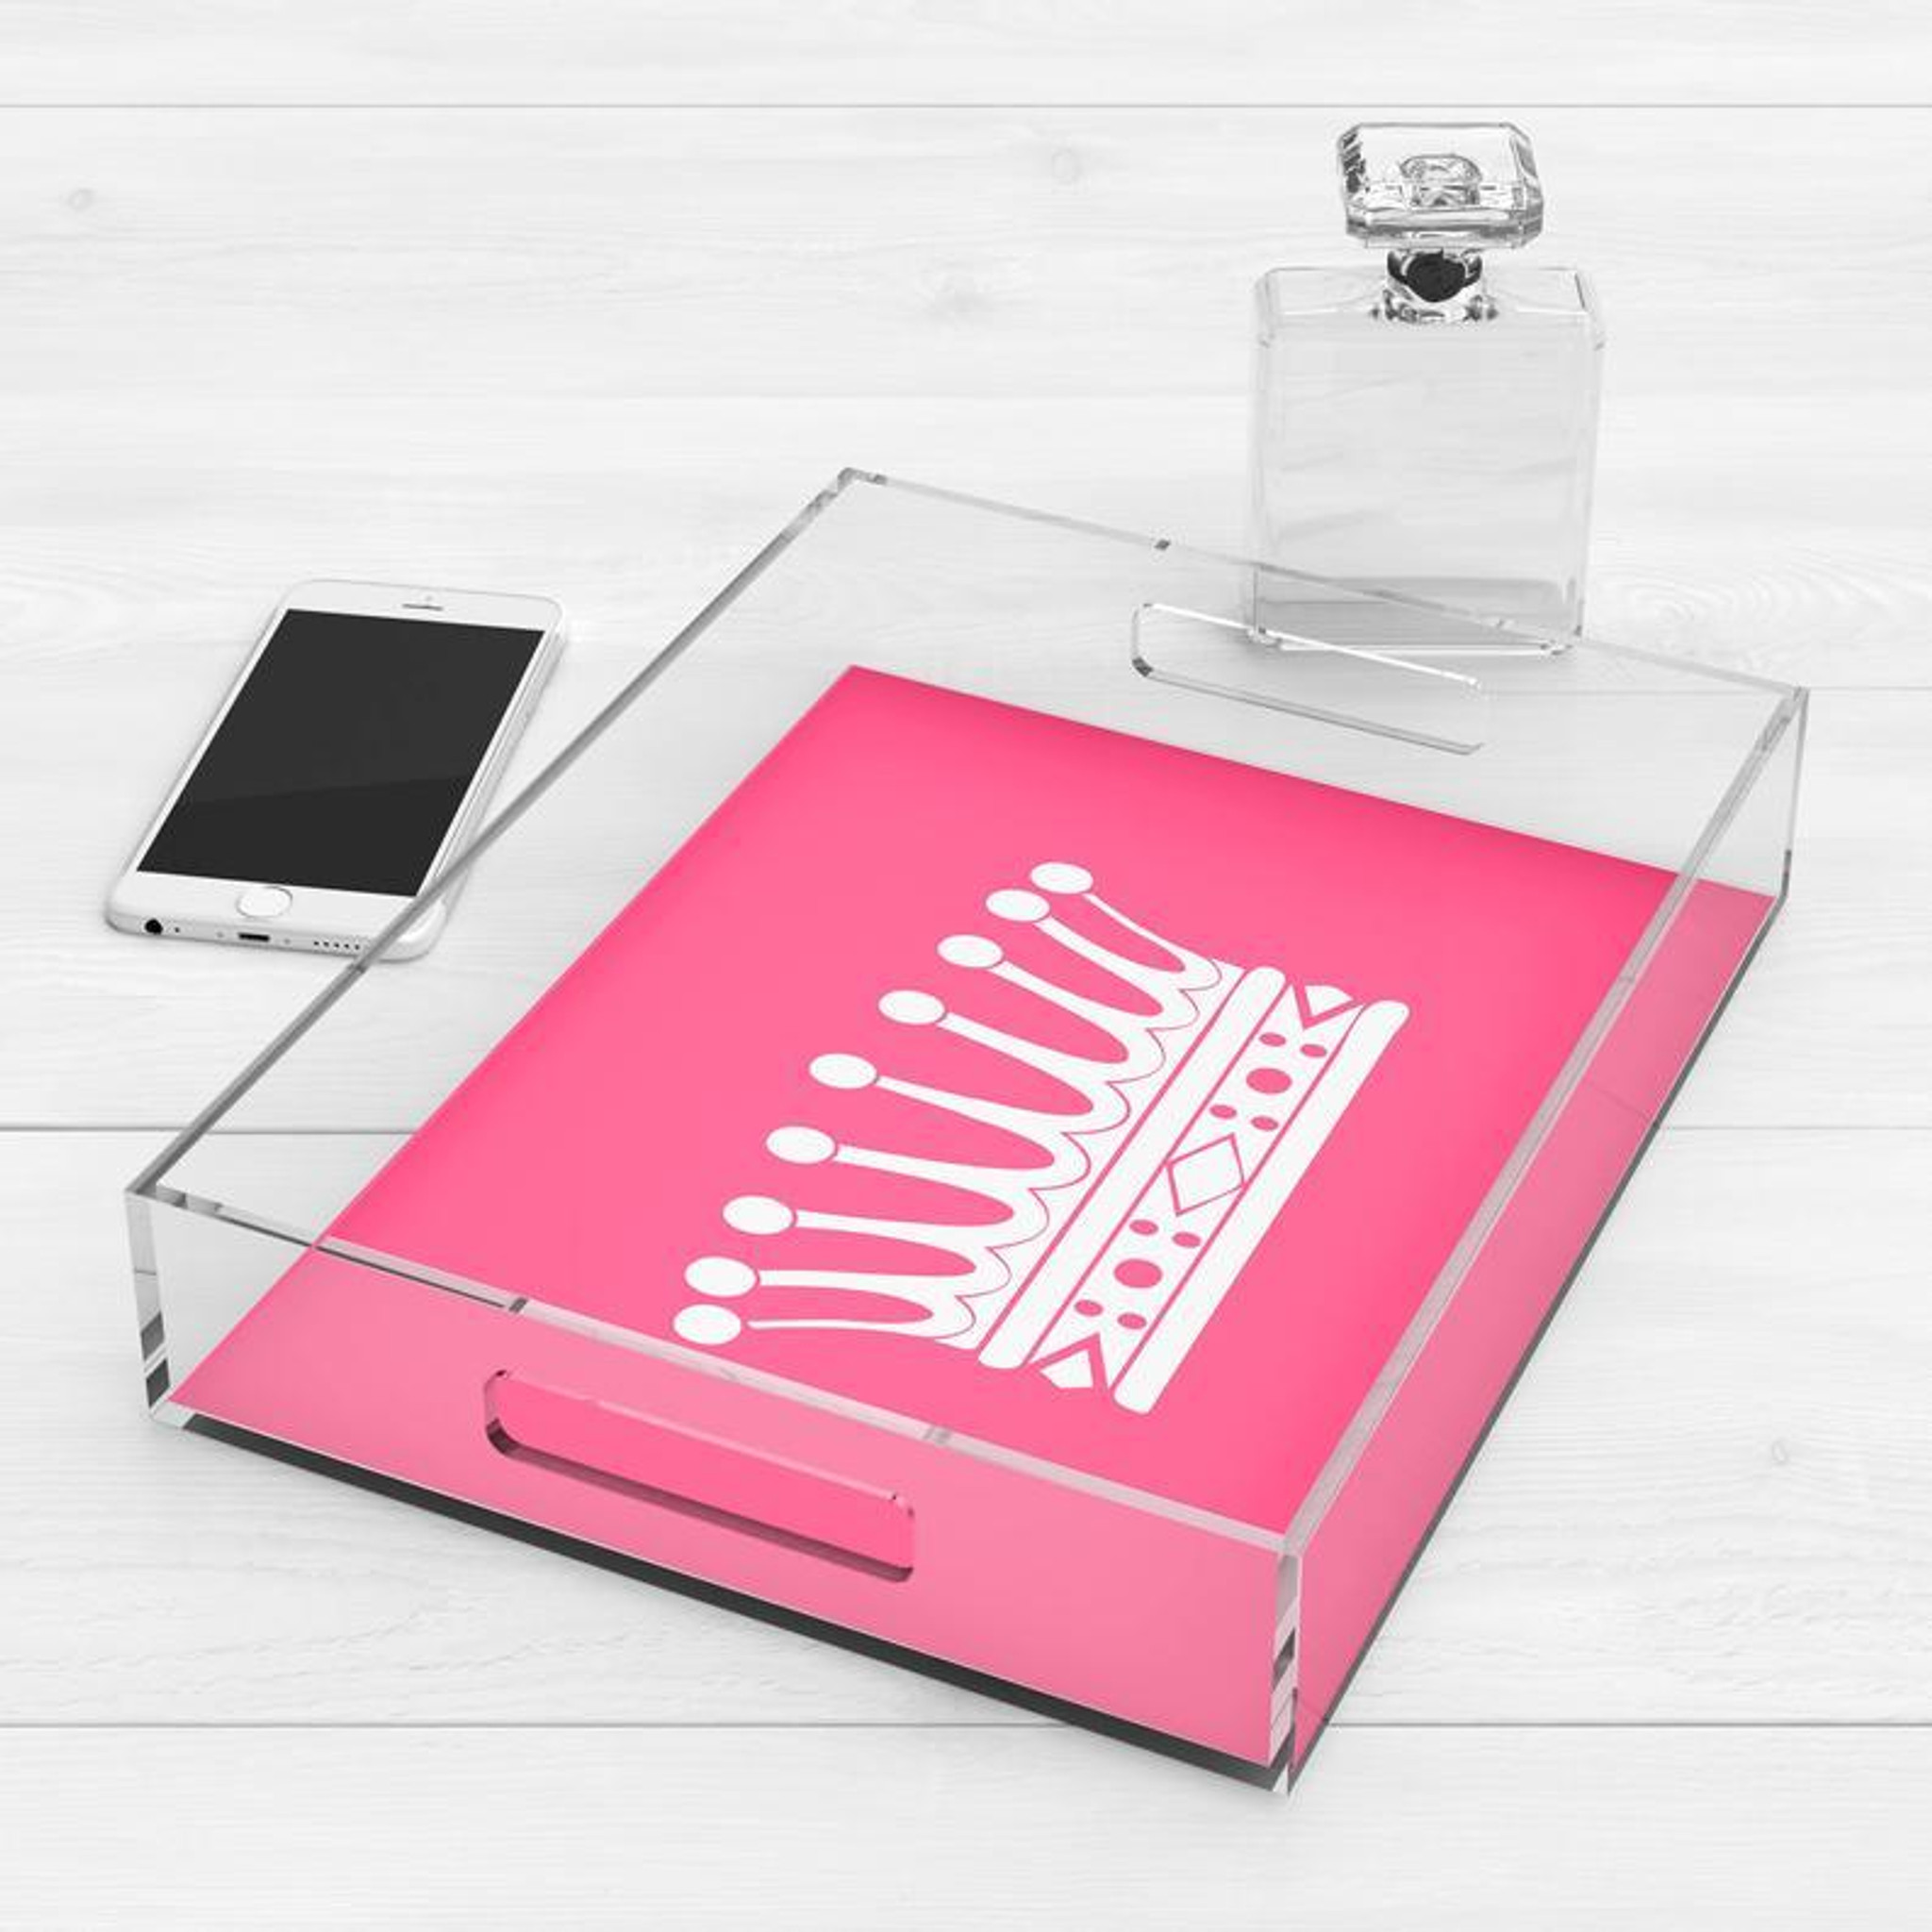 hot pink acrylic tray with handles crown princess theme girls accessory jewelry storage